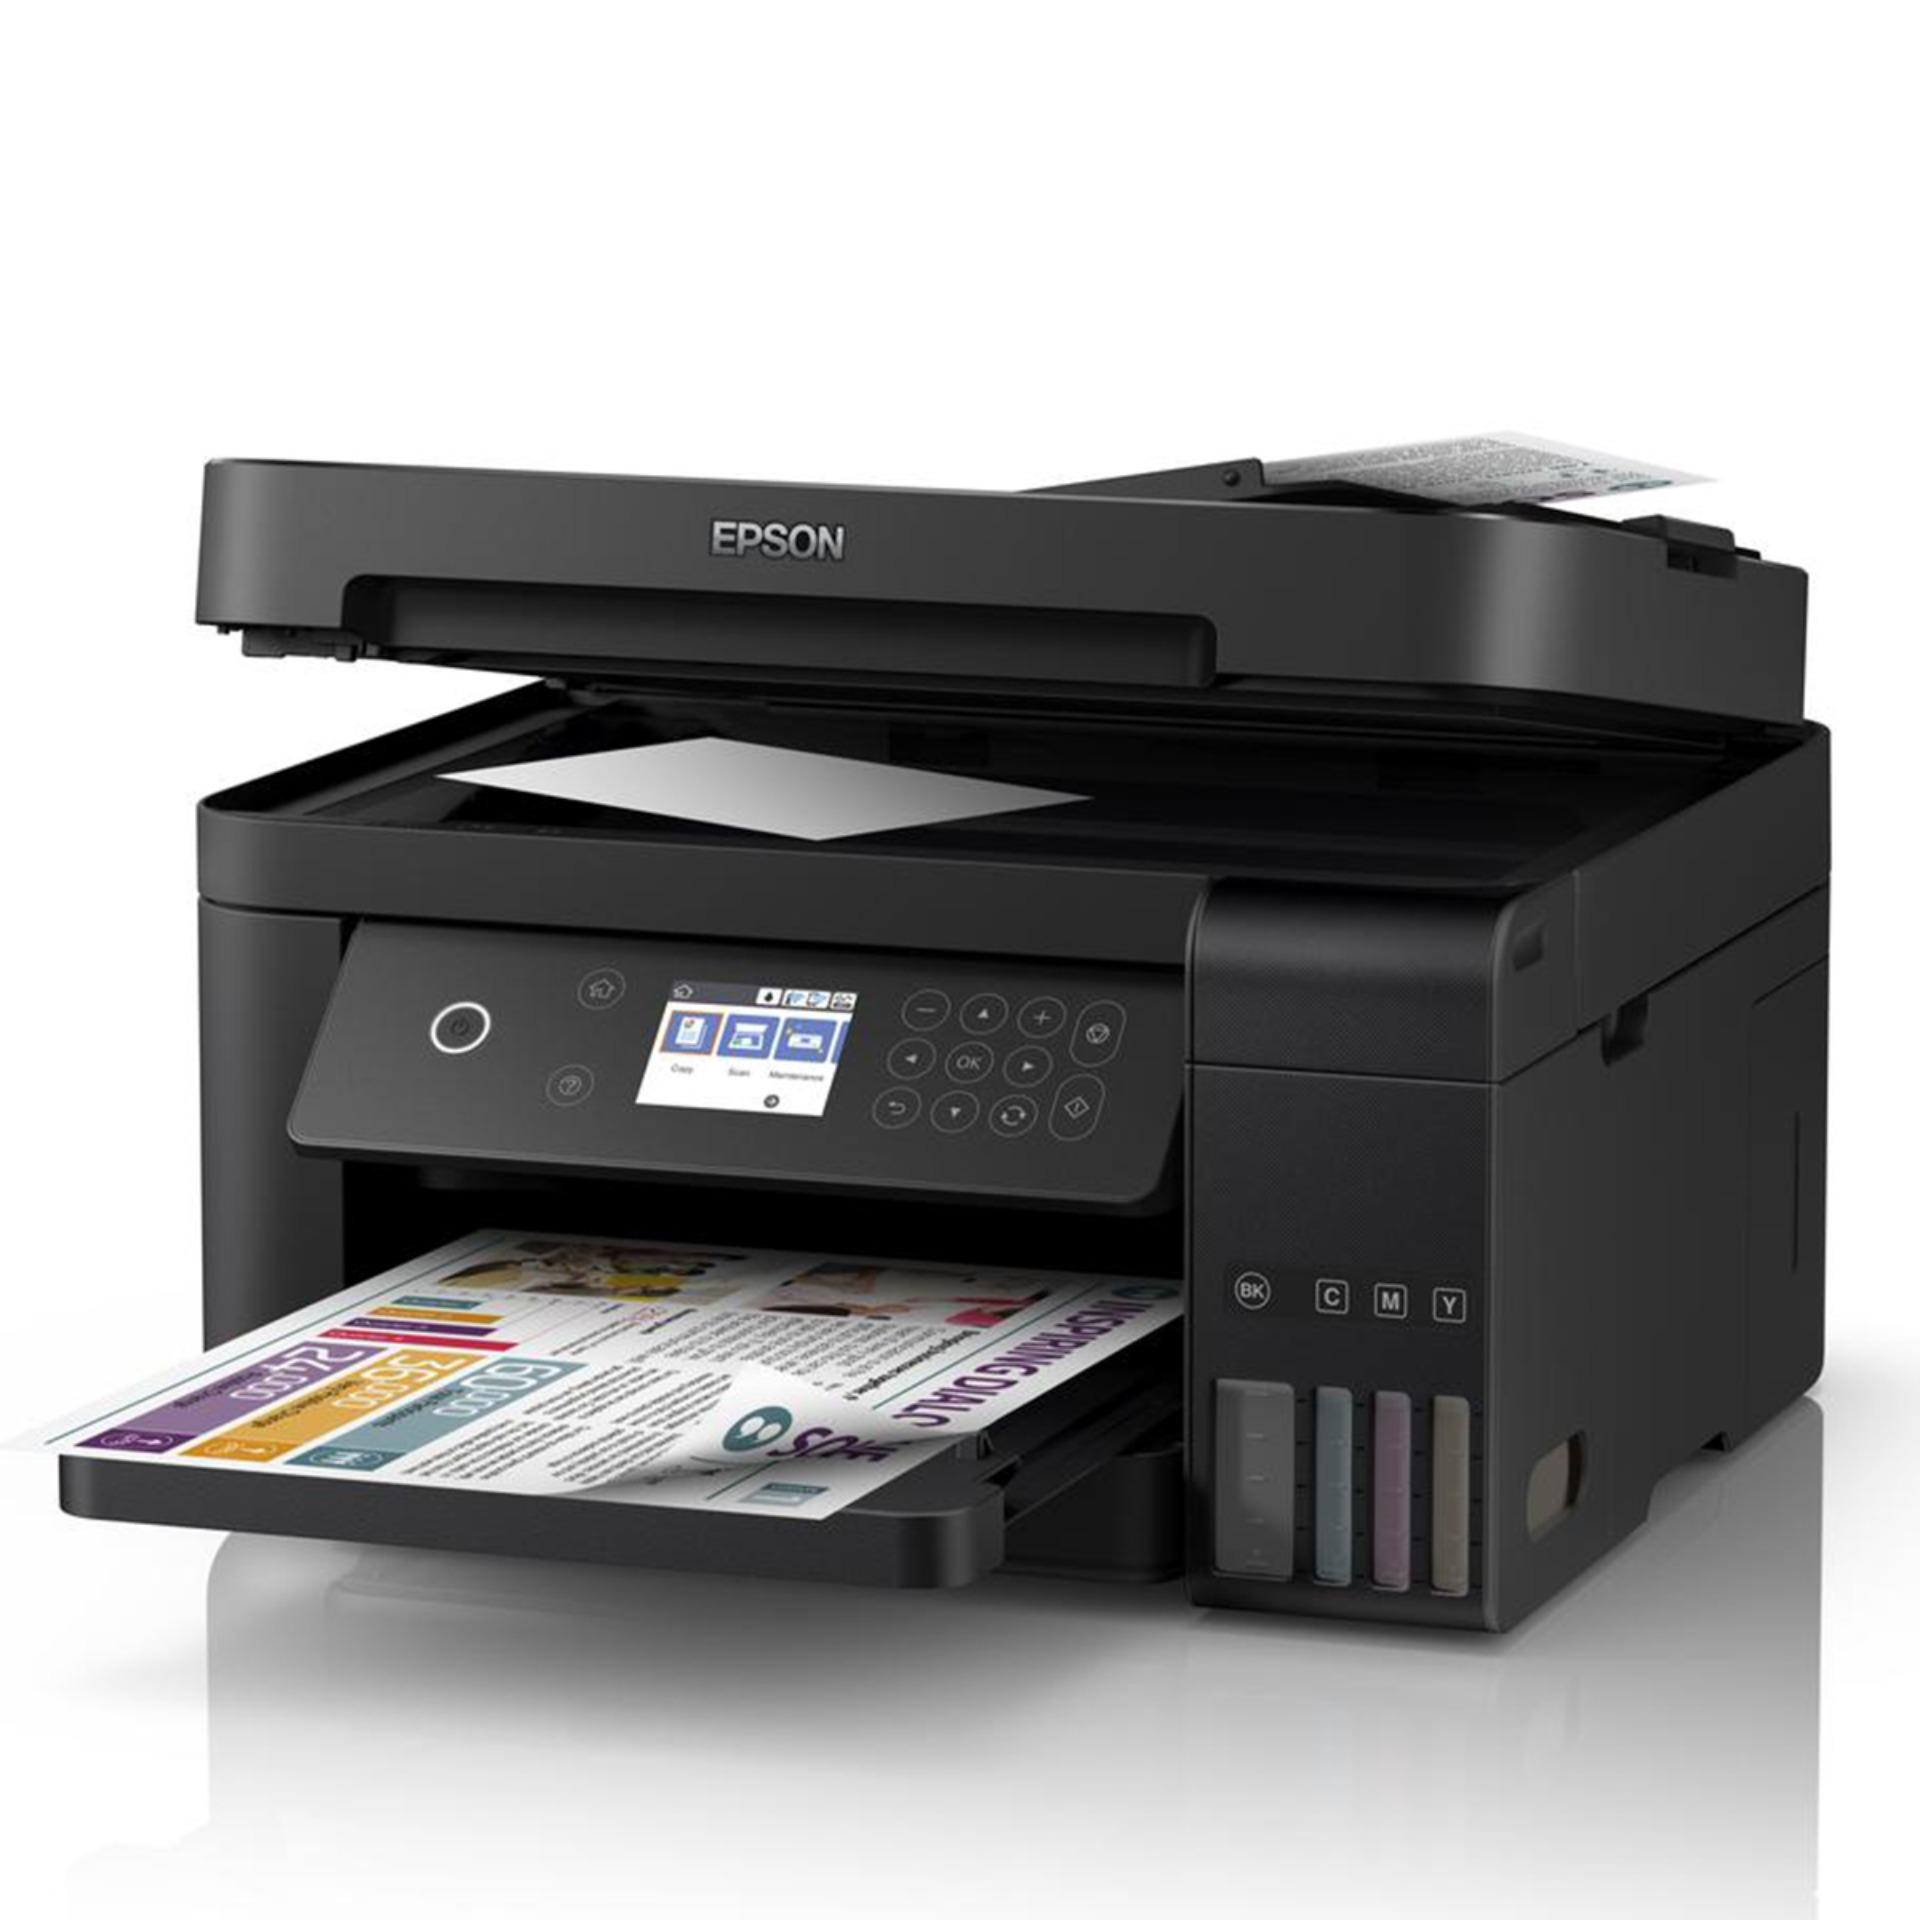 EPSON L6170 WI-FI DUPLEX ALL-IN ONE INK TANK PRINTER (4 COLOR, A4+ SIZE,  PRINT, SCAN, COPY, WITH ADF, 4800 X 1200 DPI)